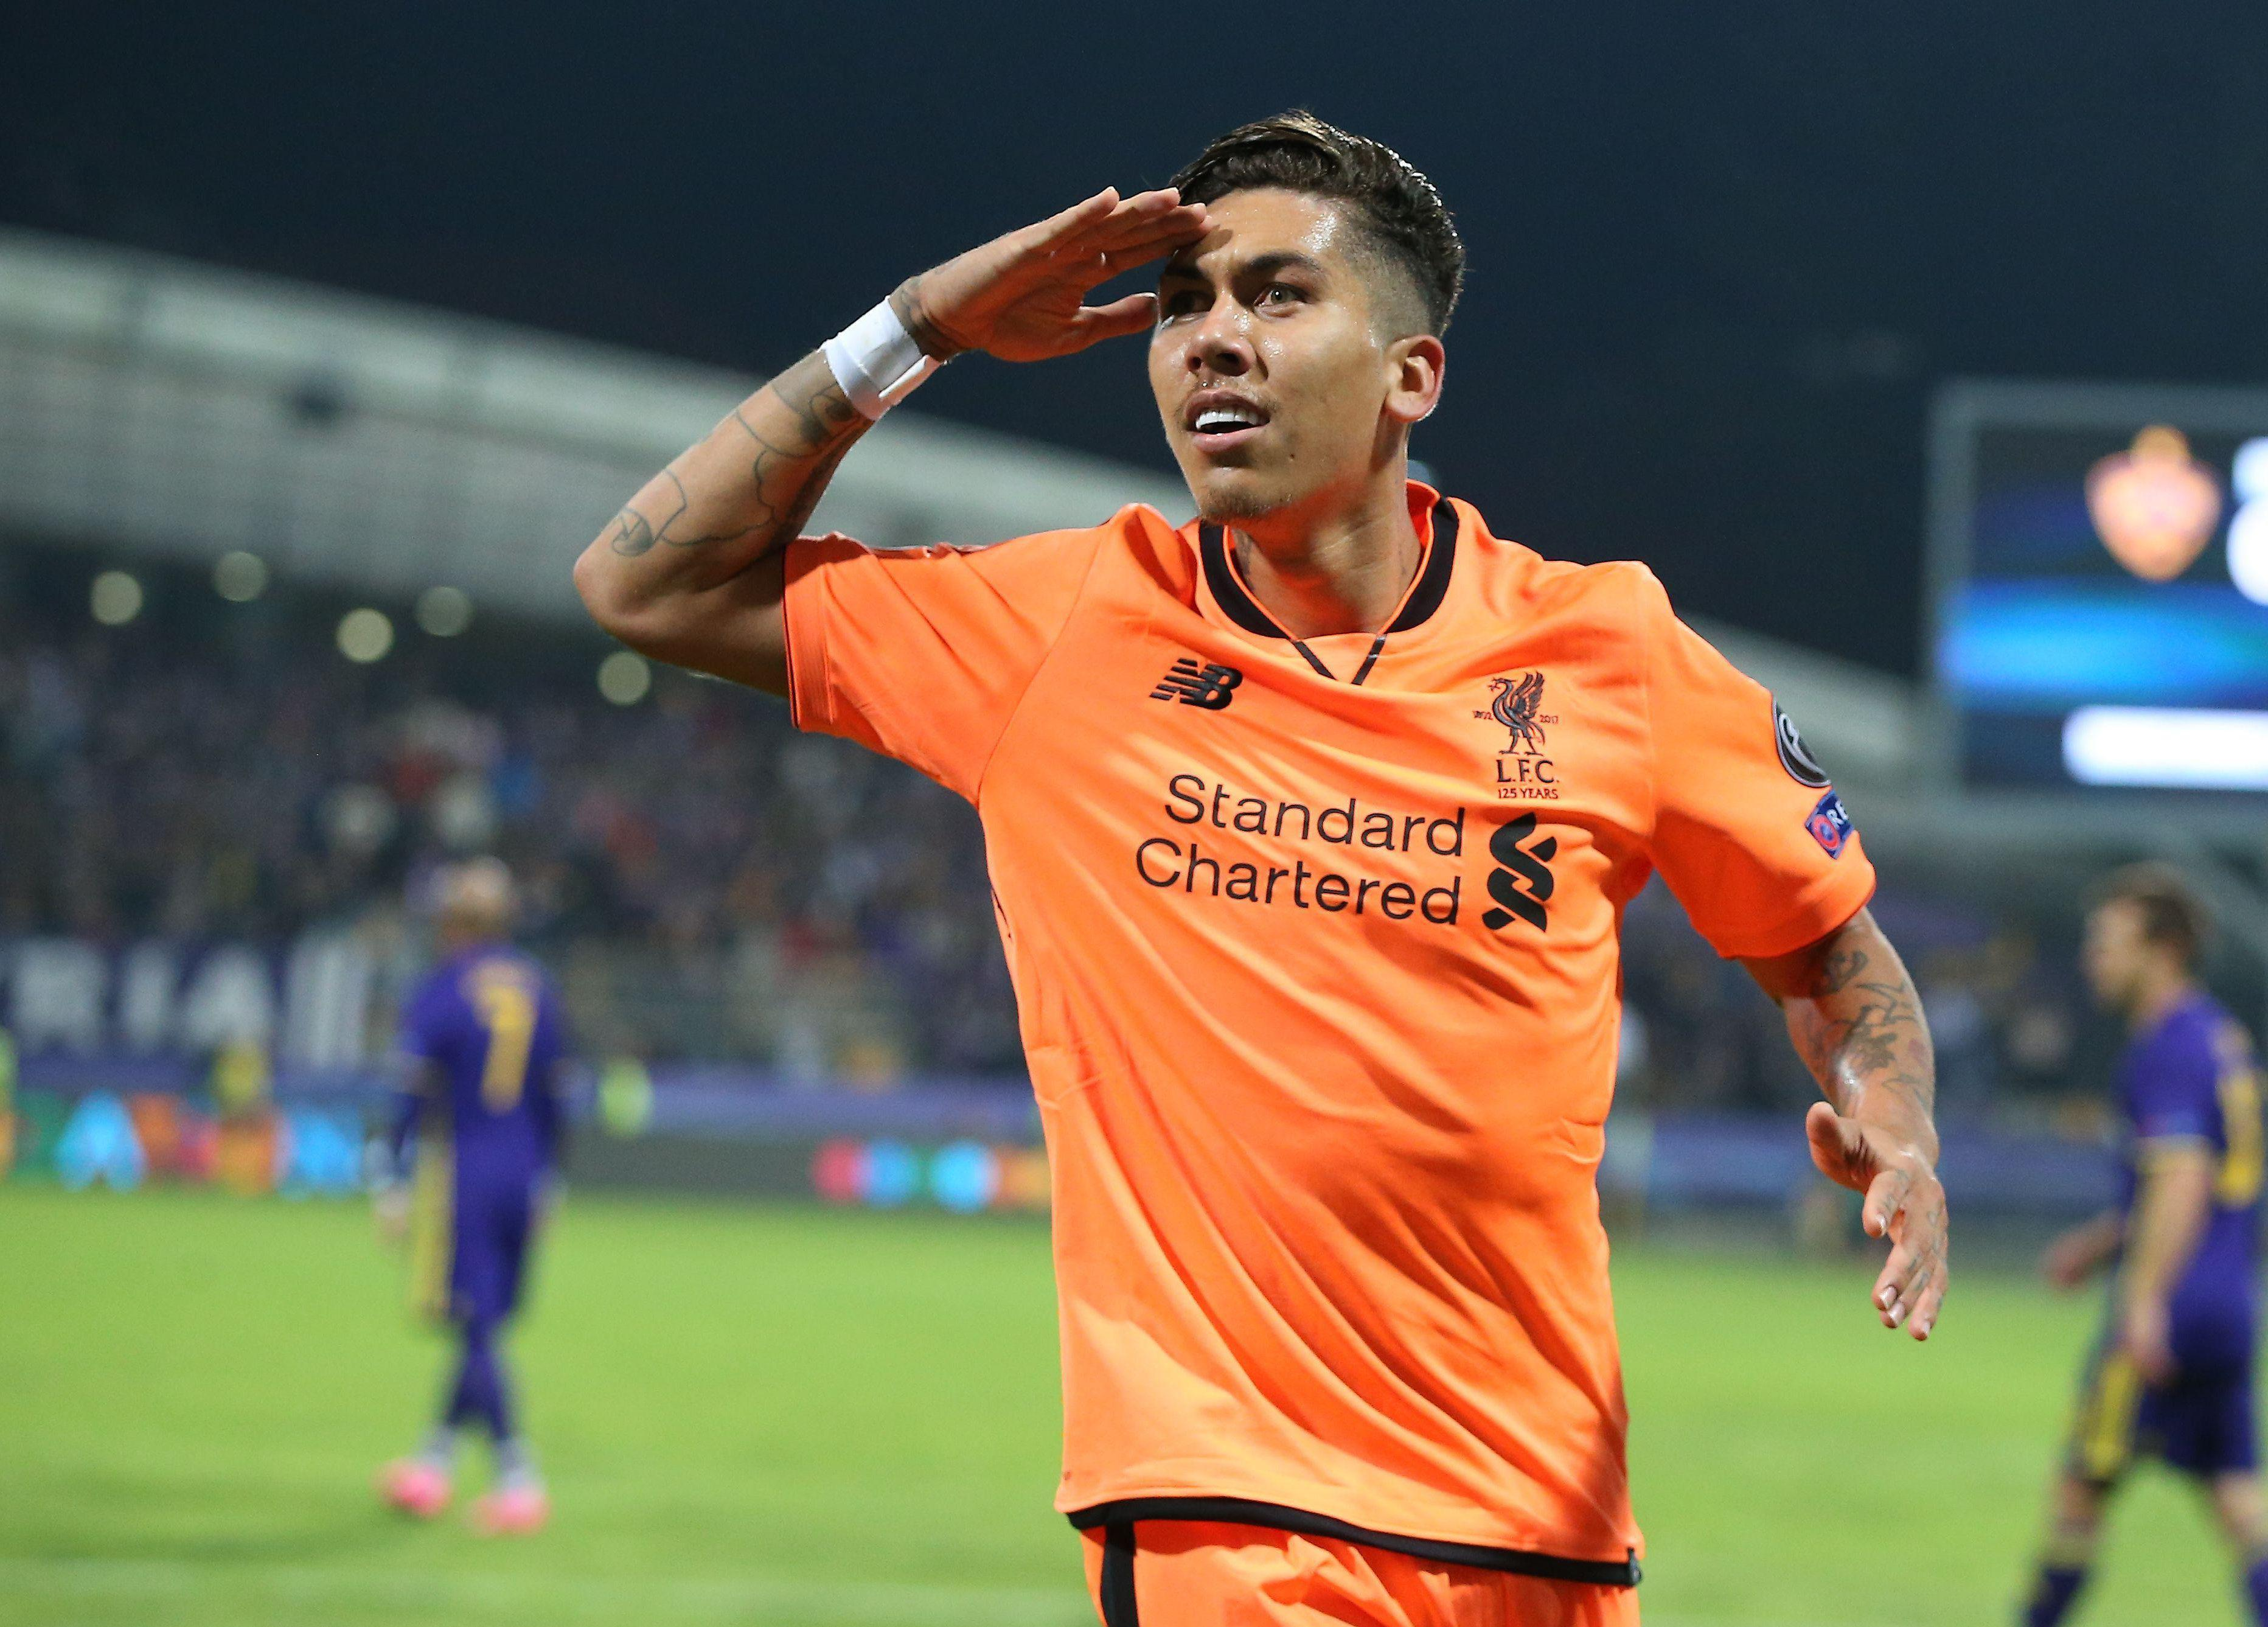 Robert Firmino was left red-faced moments before the Champions League clash in Maribor